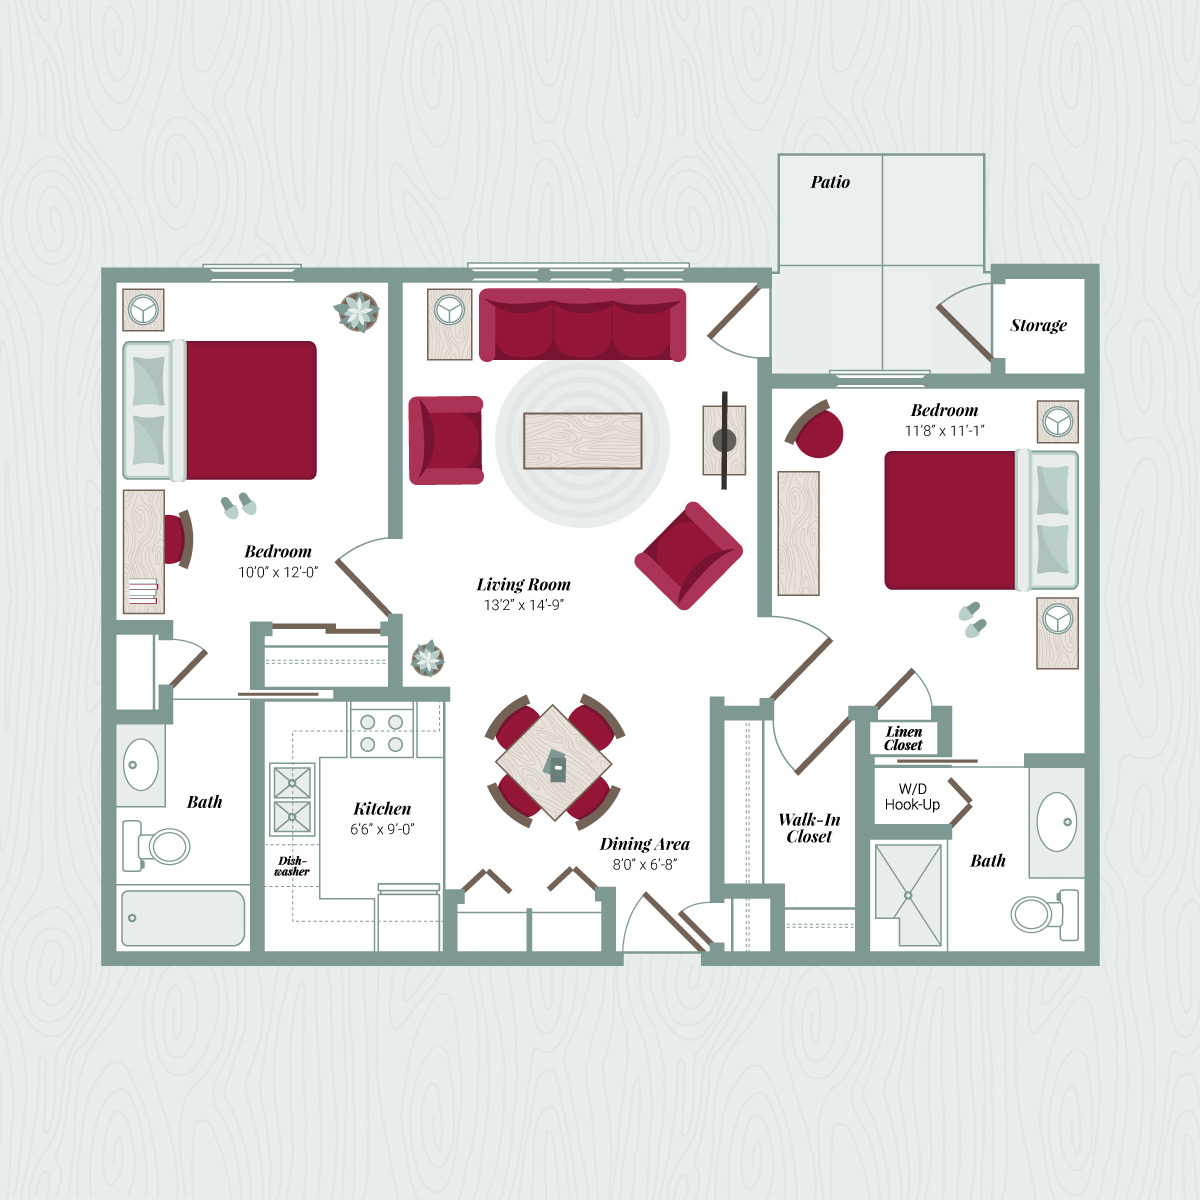 Floor Plan F - 2 Bedroom Apartment